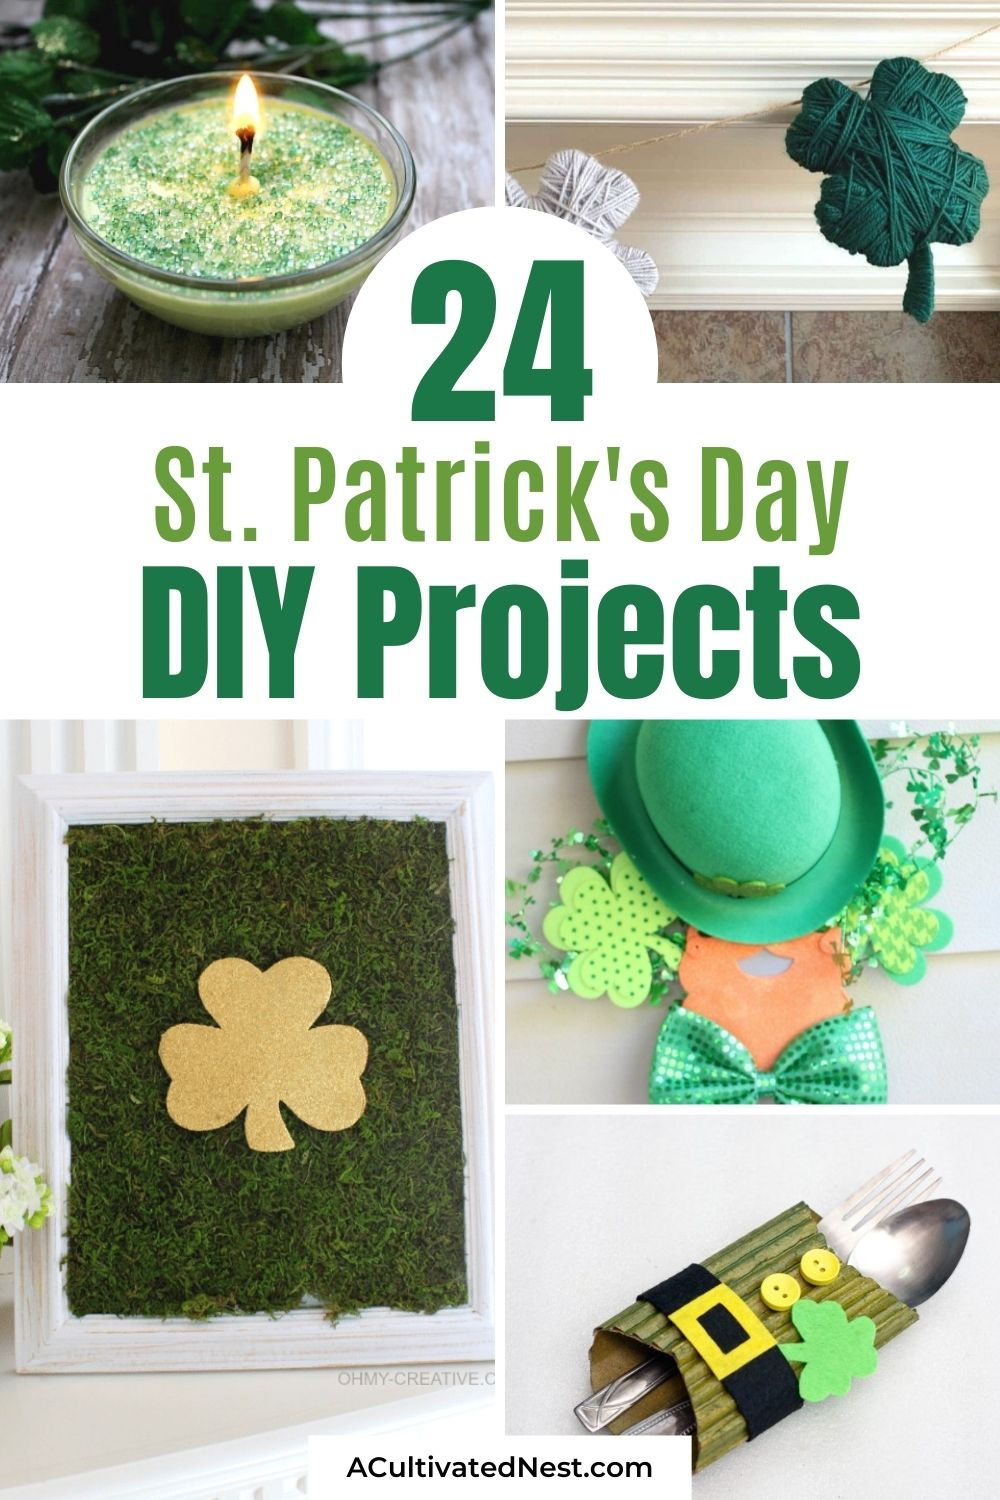 24 Fun St. Patrick's Day Crafts for Adults and Kids- This year, decorate your home for St. Paddy's Day on a budget with these 24 fun St. Patrick's Day crafts for adults and kids! | #DIY #StPatricksDay #SaintPatricksDayDecor #crafts #ACultivatedNest